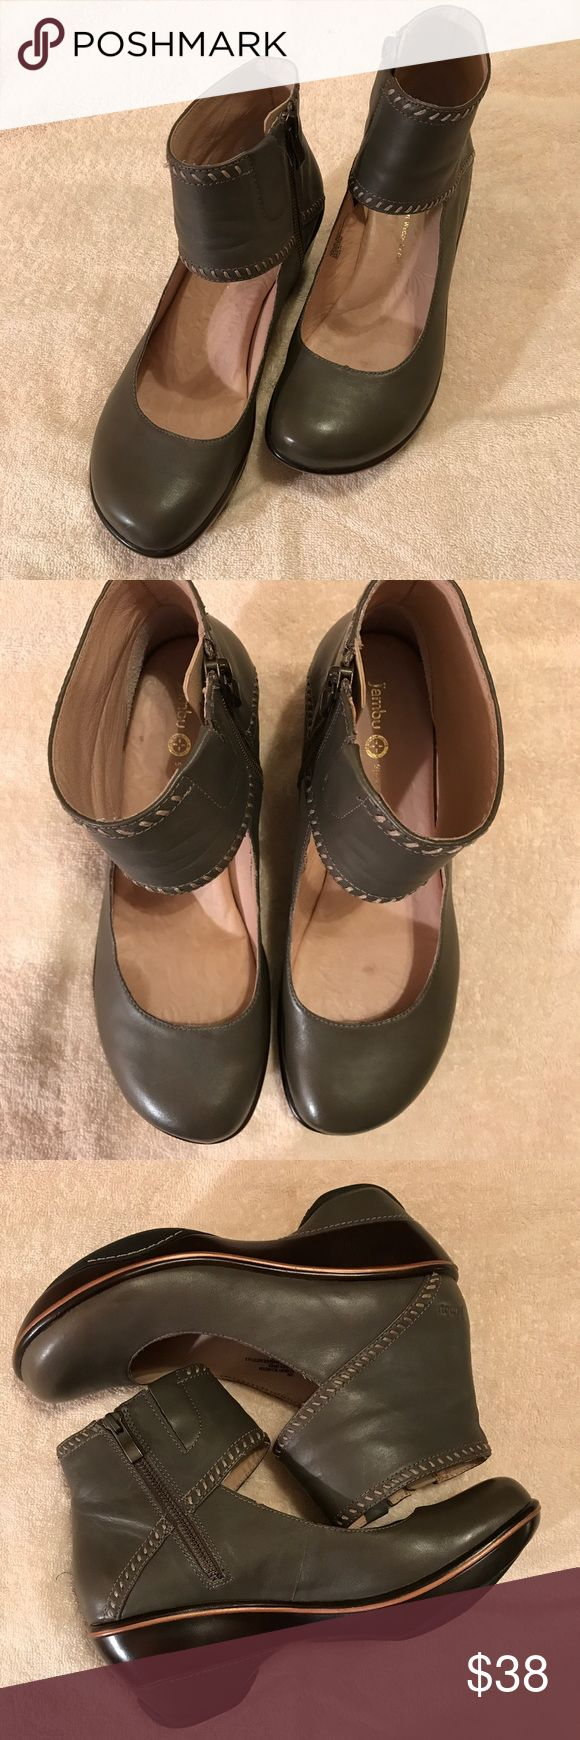 🎀 NEW 🎀 Jambu Booties Jambu known for style and comfort. Vegan leather booties with leather lining and cushioned footbed. Roxbury bootie in sage green with tan stitching. Inside zipper 2 inch heel and .50 inch platform. Like new! Super cute and comfy! Jambu Shoes Ankle Boots & Booties